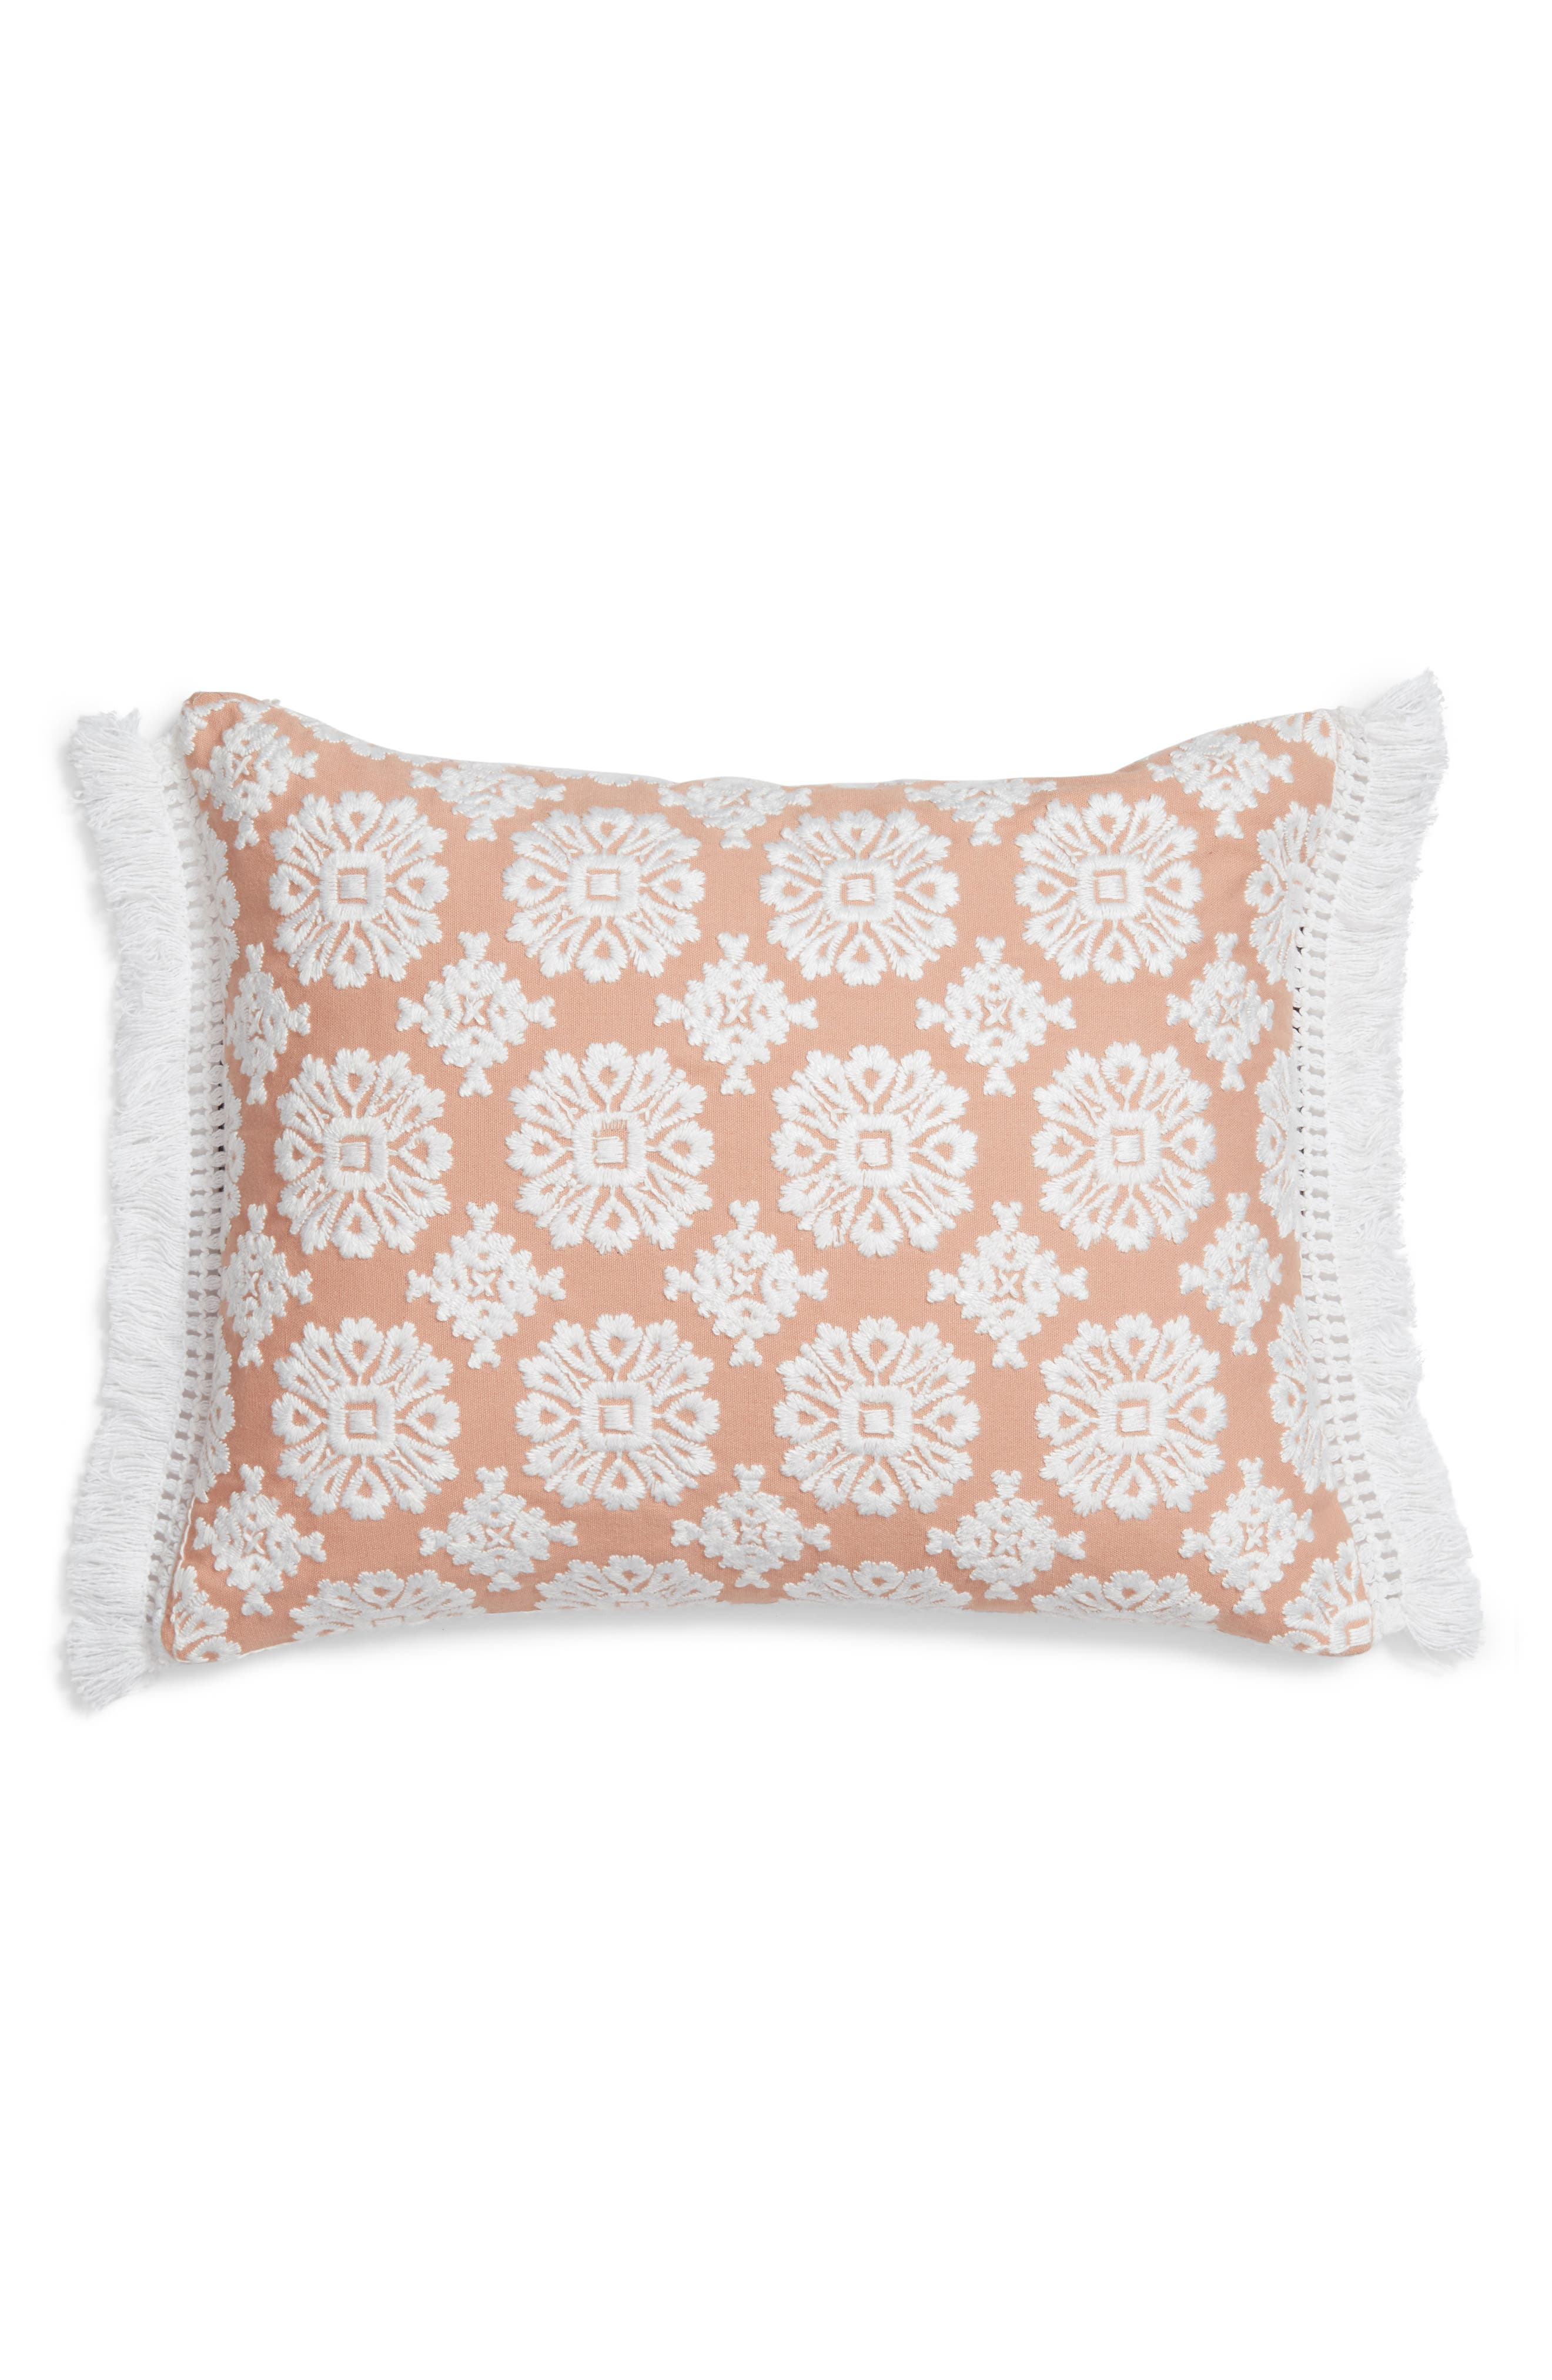 Bree Embroidered Accent Pillow,                             Main thumbnail 1, color,                             Blush